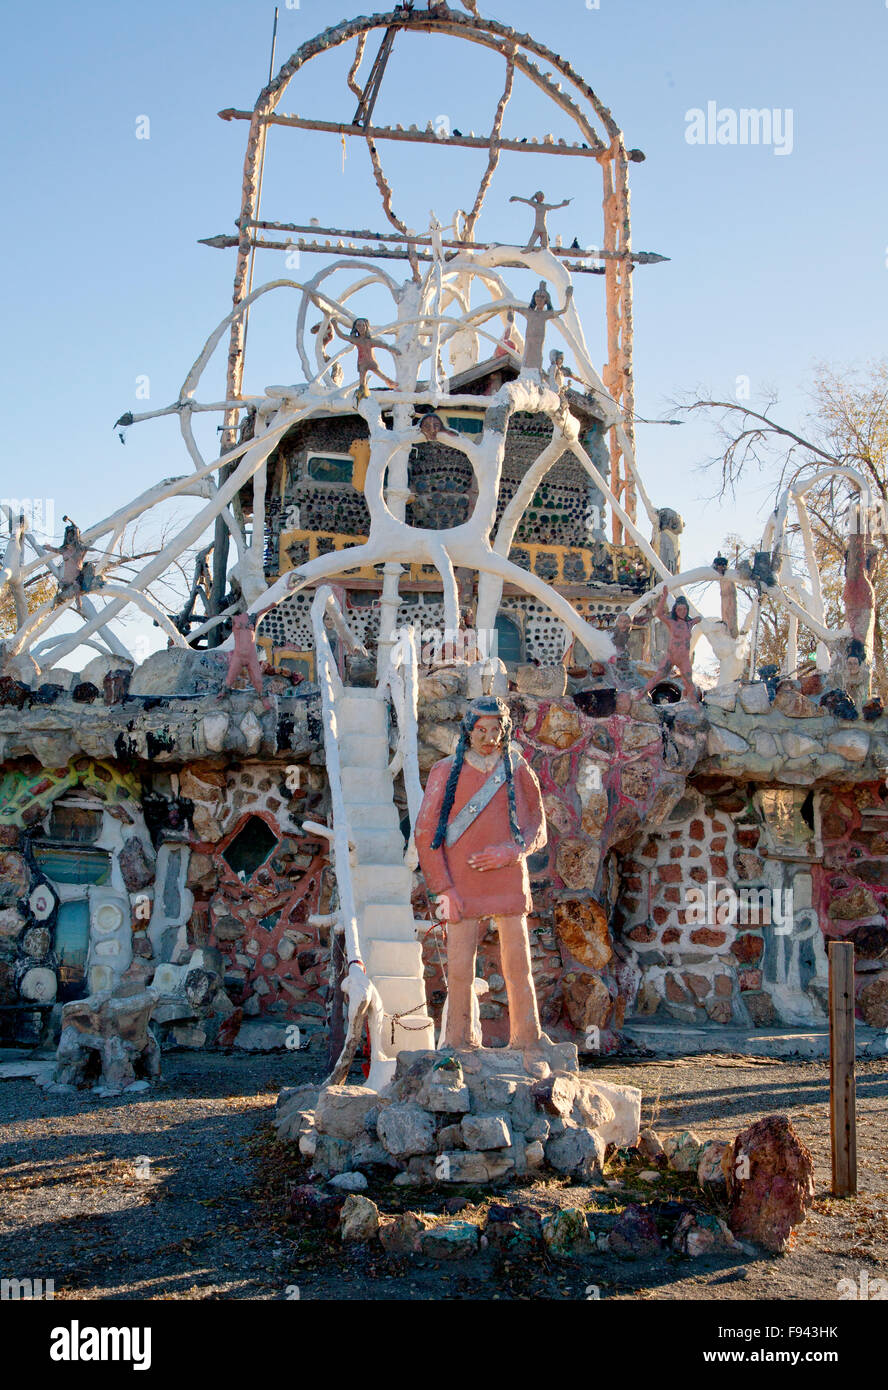 Detail of sculpture and structure at Thunder Mountain, Nevada, US, 2015. - Stock Image